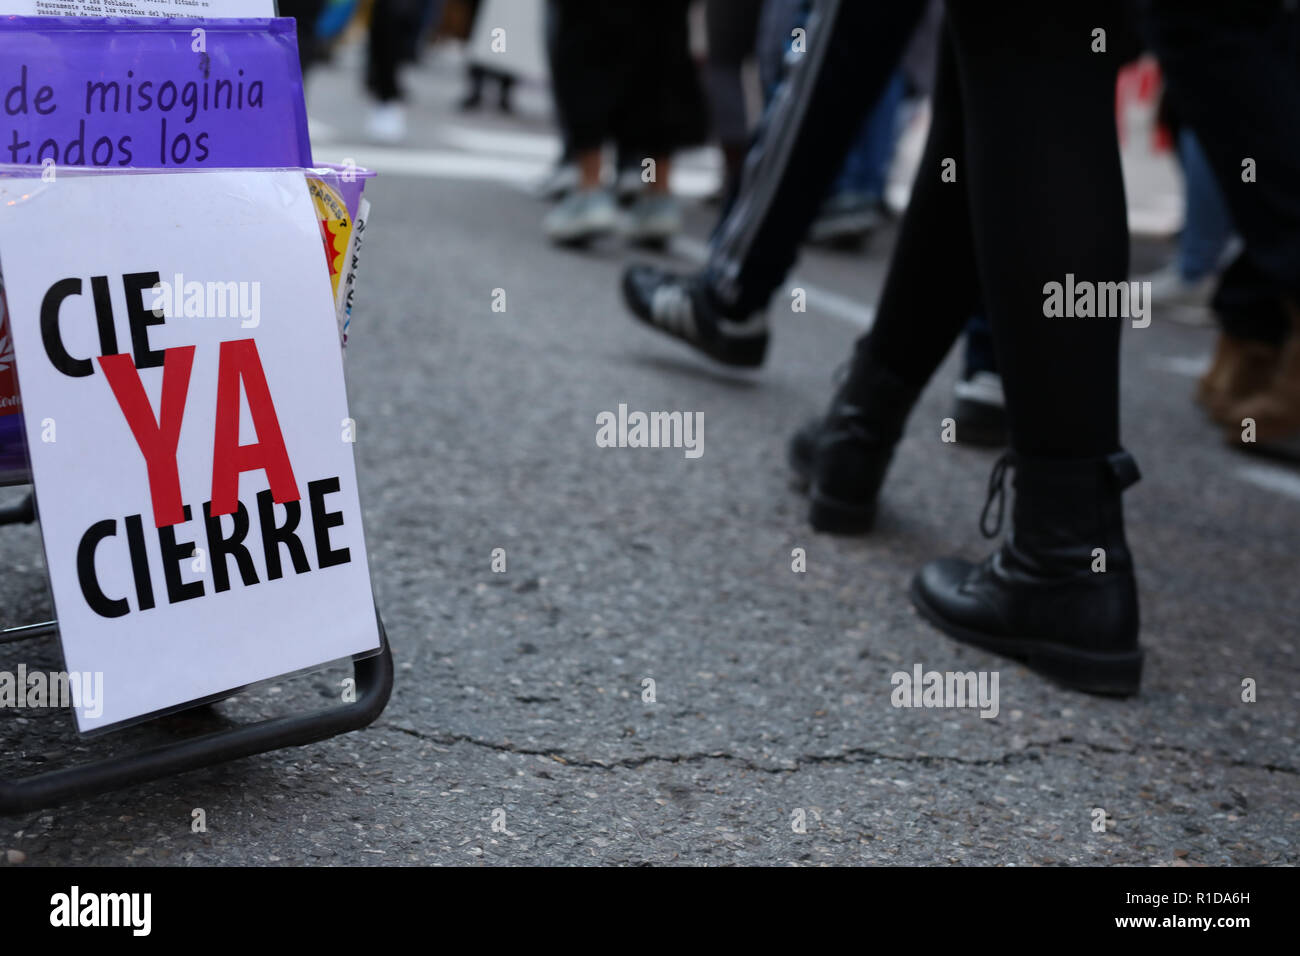 Madrid, Spain. 11th Nov 2018. Several organisations have called a demonstration under the slogan 'Against institutional racism' that roamed the streets of Madrid to demand the elimination of immigration centers (CIE) and denounce the Law of Foreigners and the persecution of the manteros, among other demands on Nov 11, 2018 in Madrid, Spain Credit: Jesús Hellin/Alamy Live News - Stock Image